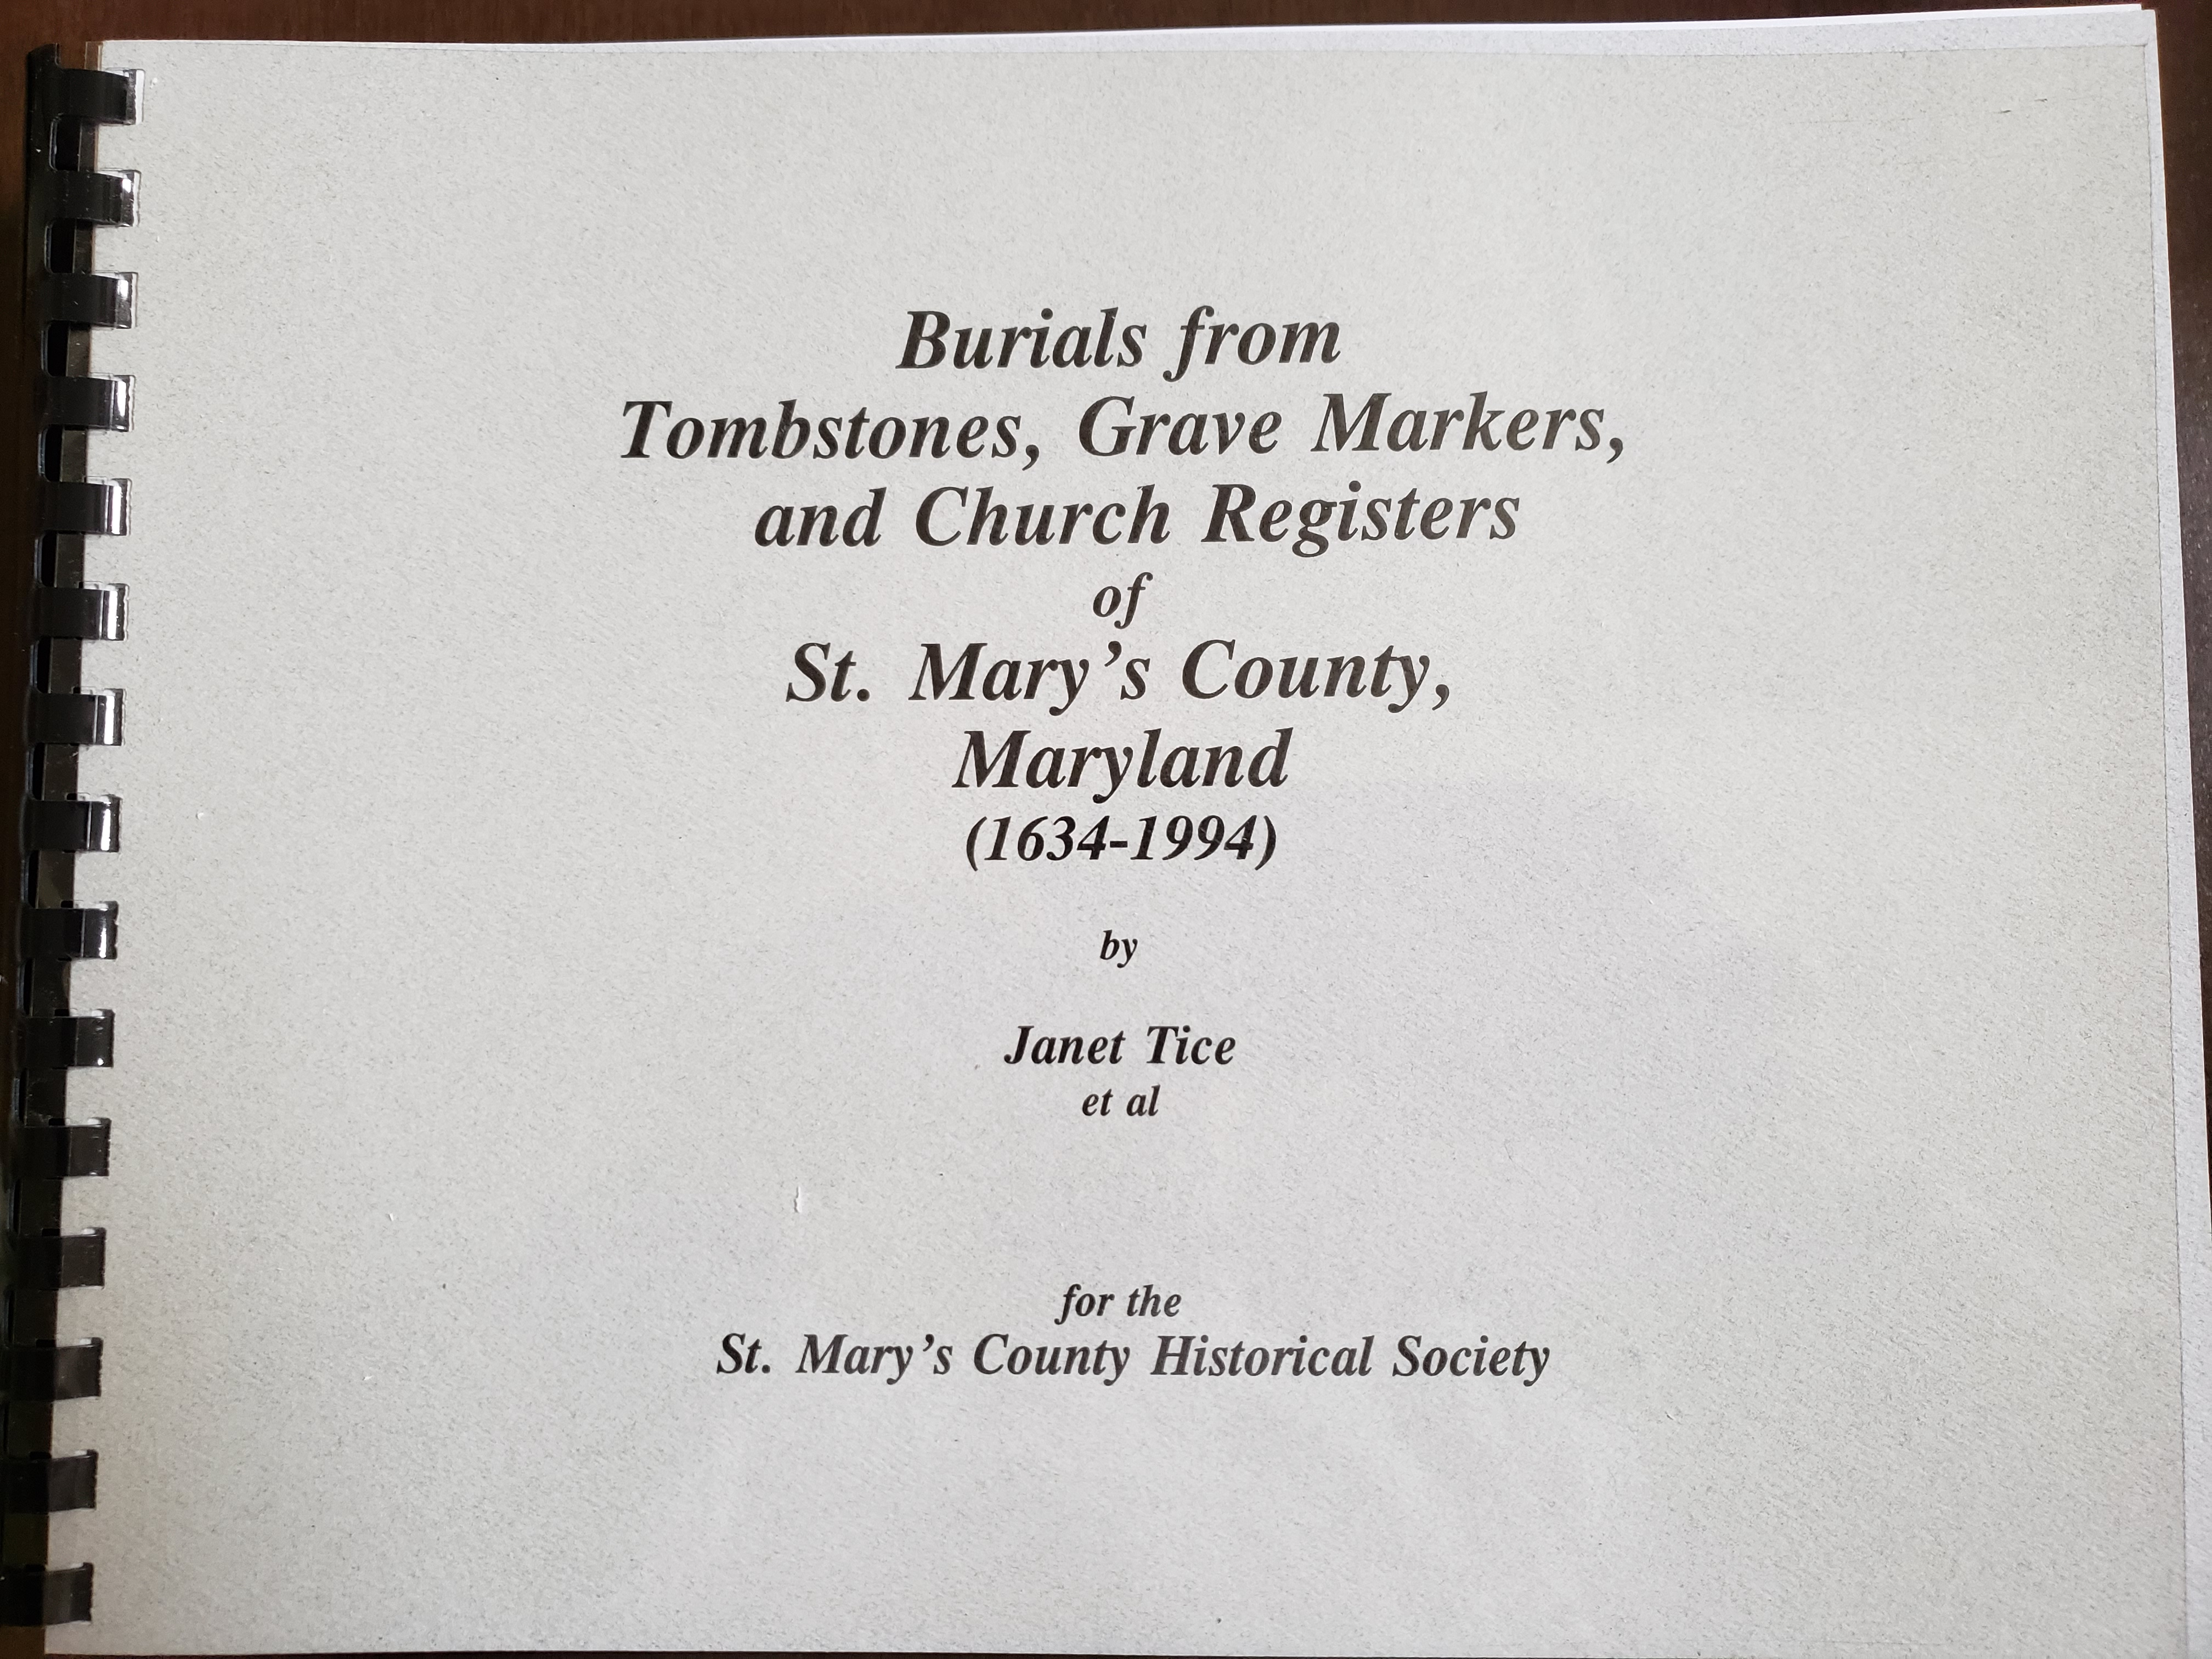 Burials from Tombstones, Grave Markers, and Church Registers of St. Mary's County, Maryland